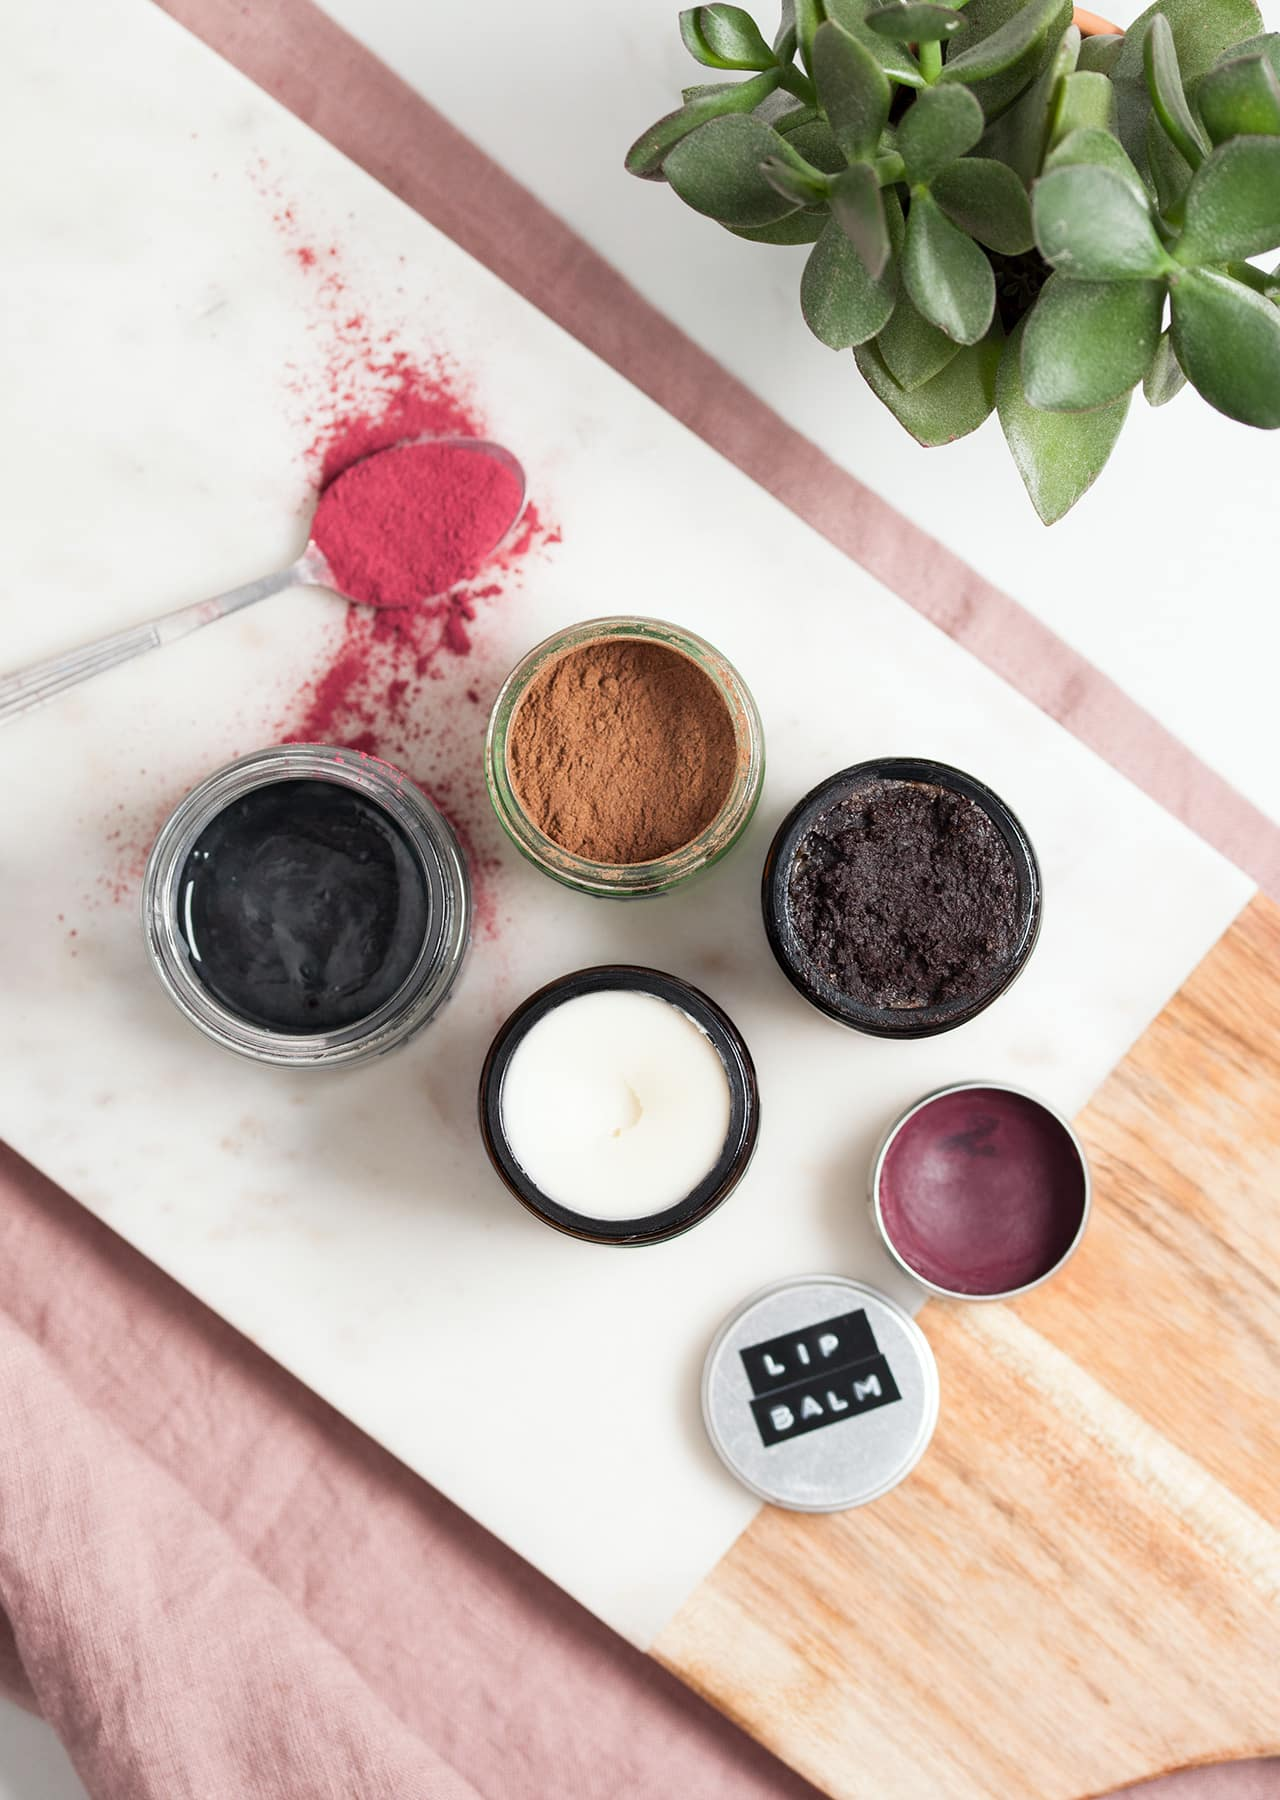 DIY Beauty Recipes 5 Ways